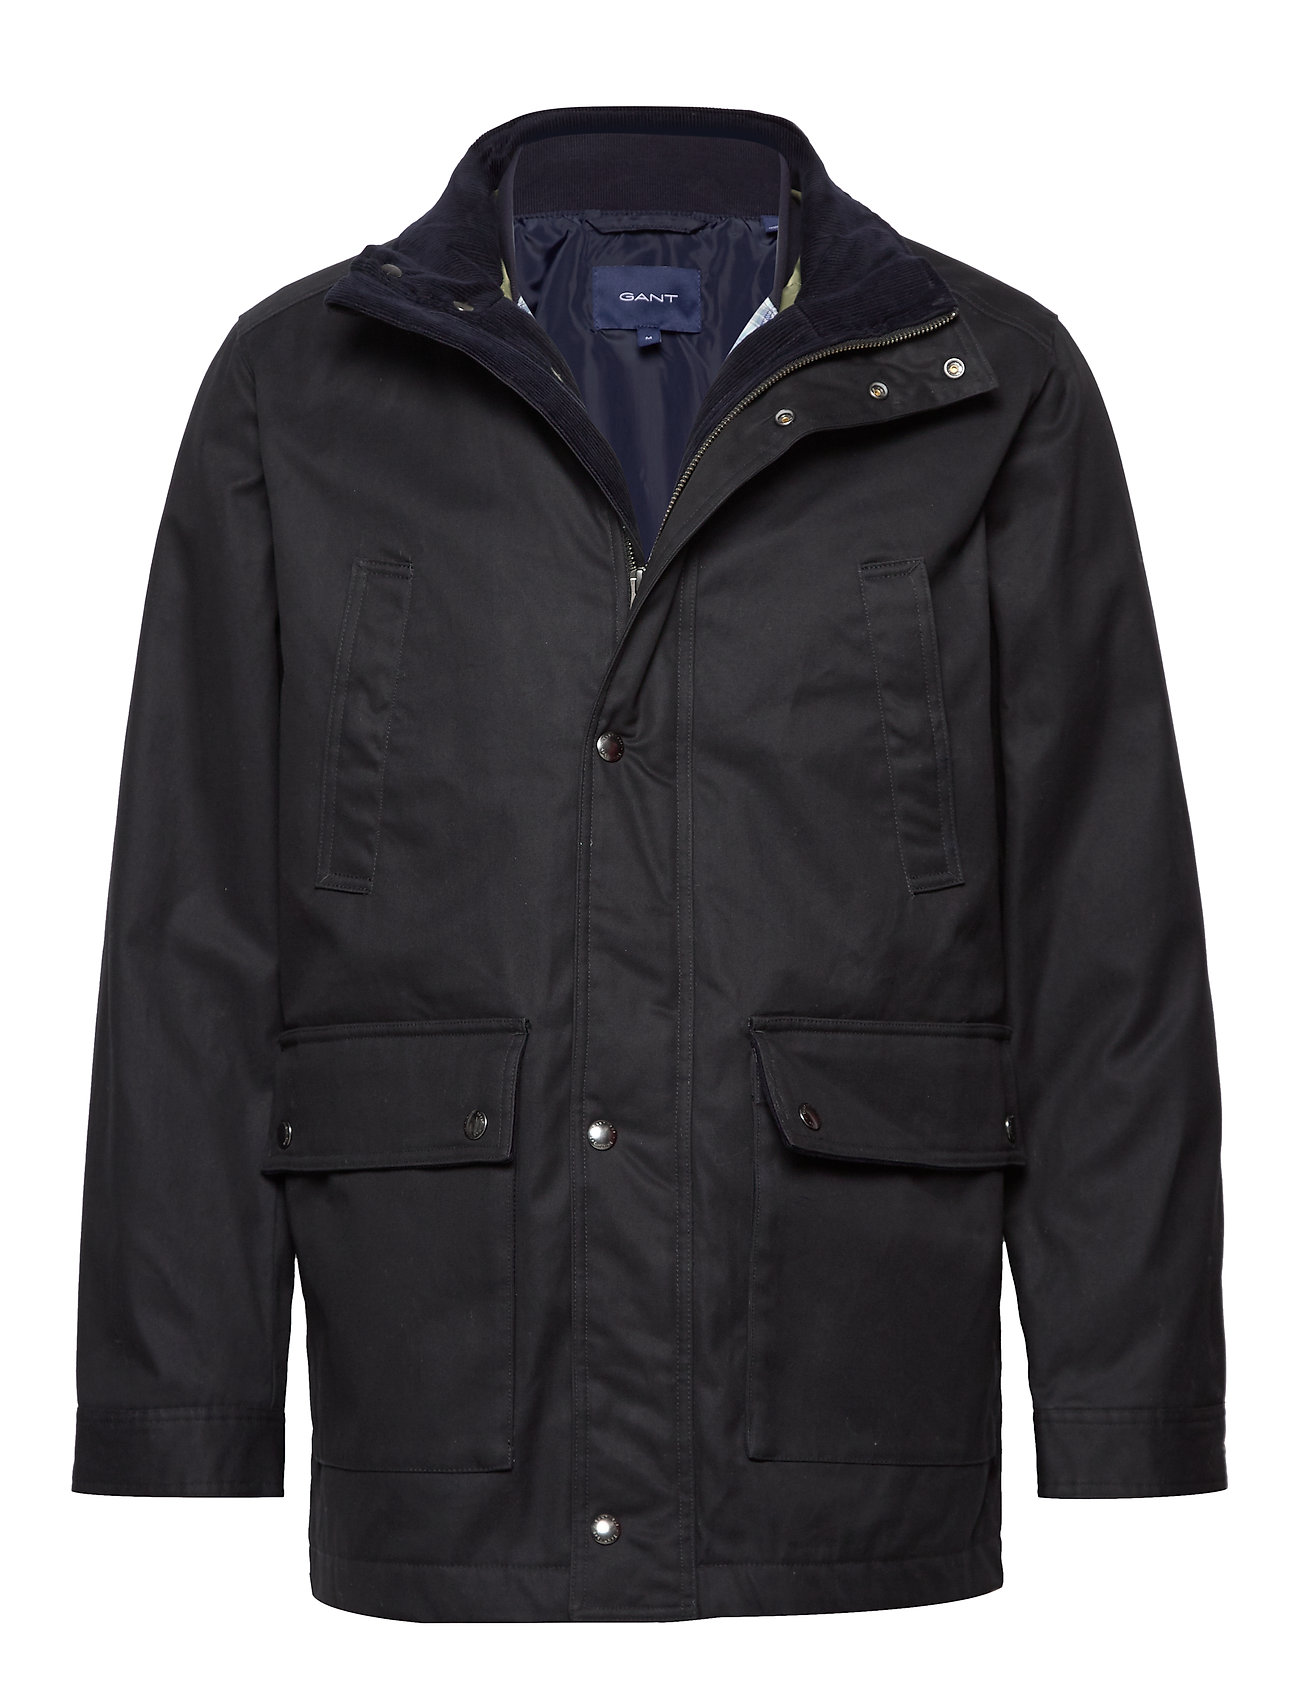 Gant D1. THE DOUBLE DECKER - BLACK